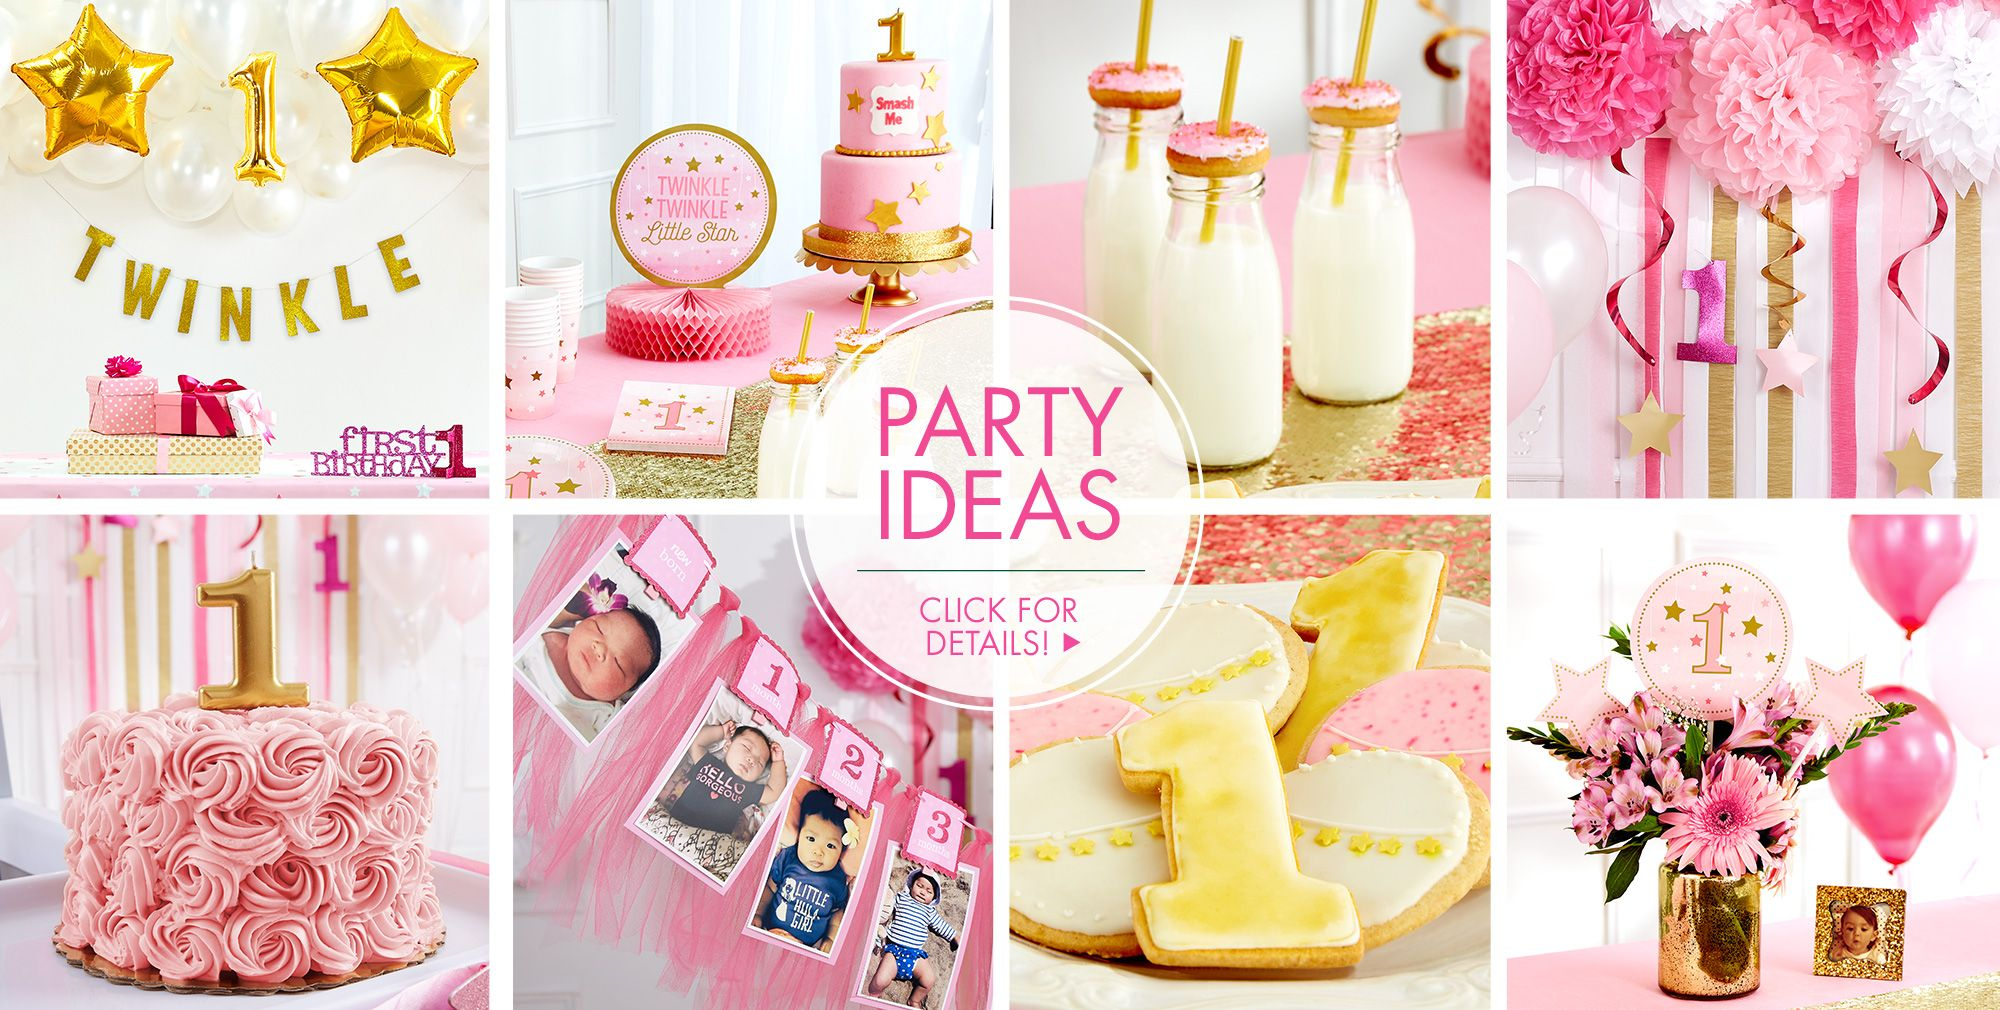 Twinkle Girl 1st Birthday Party Ideas